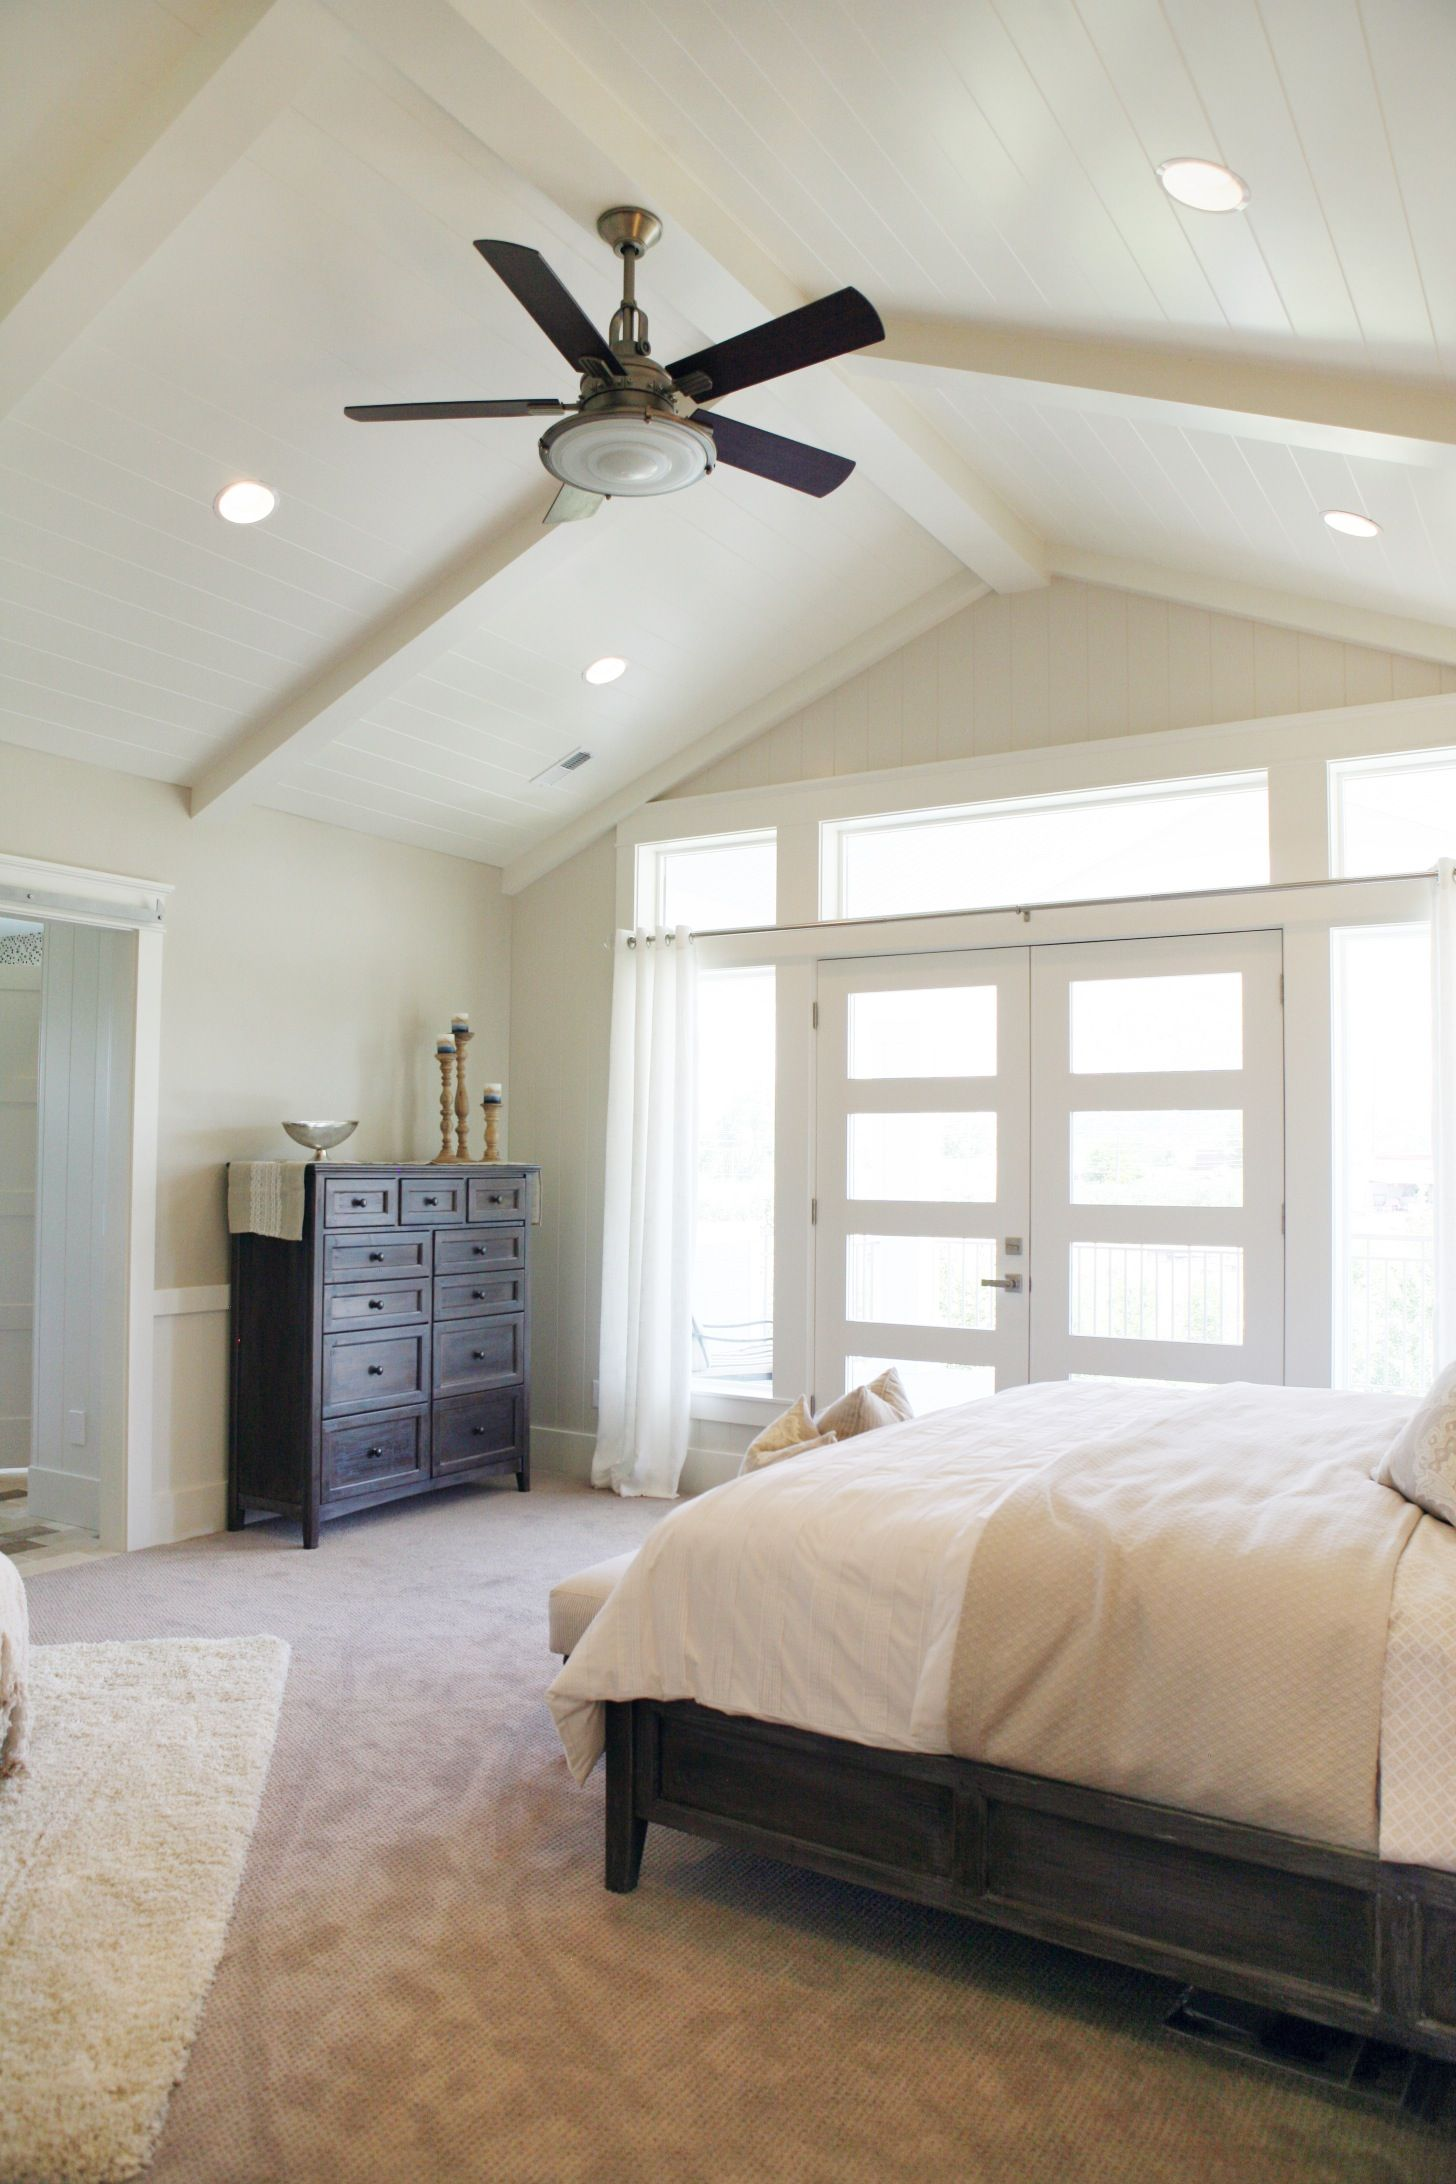 Guide On How To Install Ceiling Fan On Vaulted Ceiling Bed In